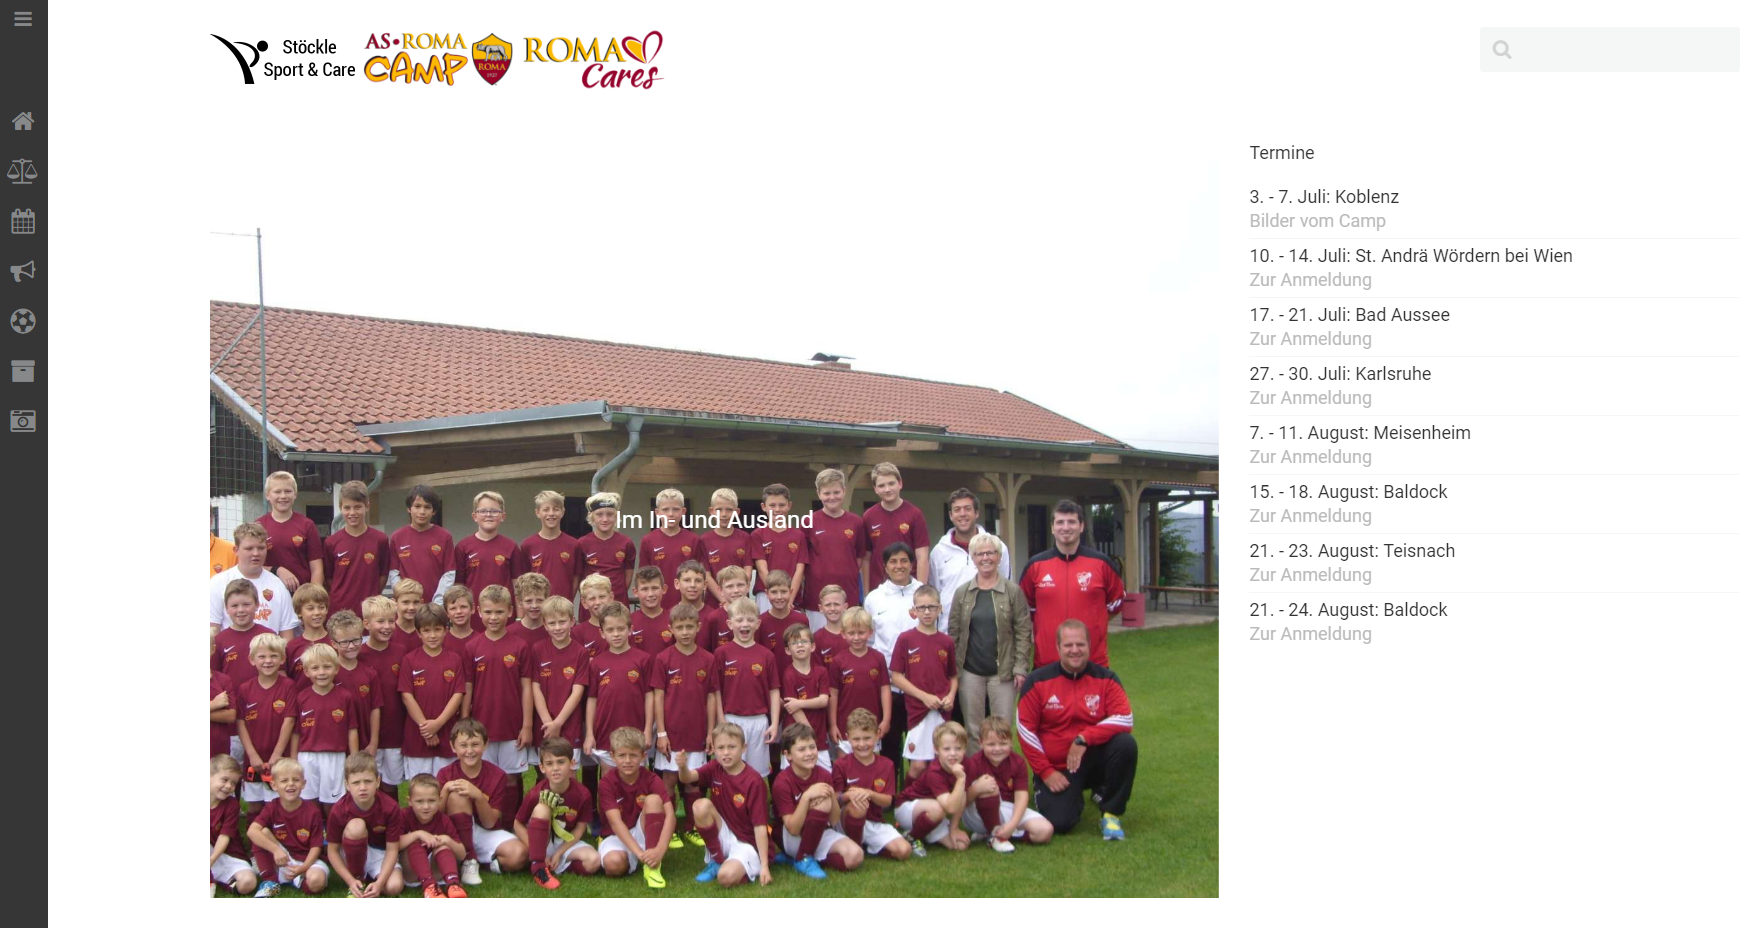 Stöckle Sports & Care - AS Roma Camps